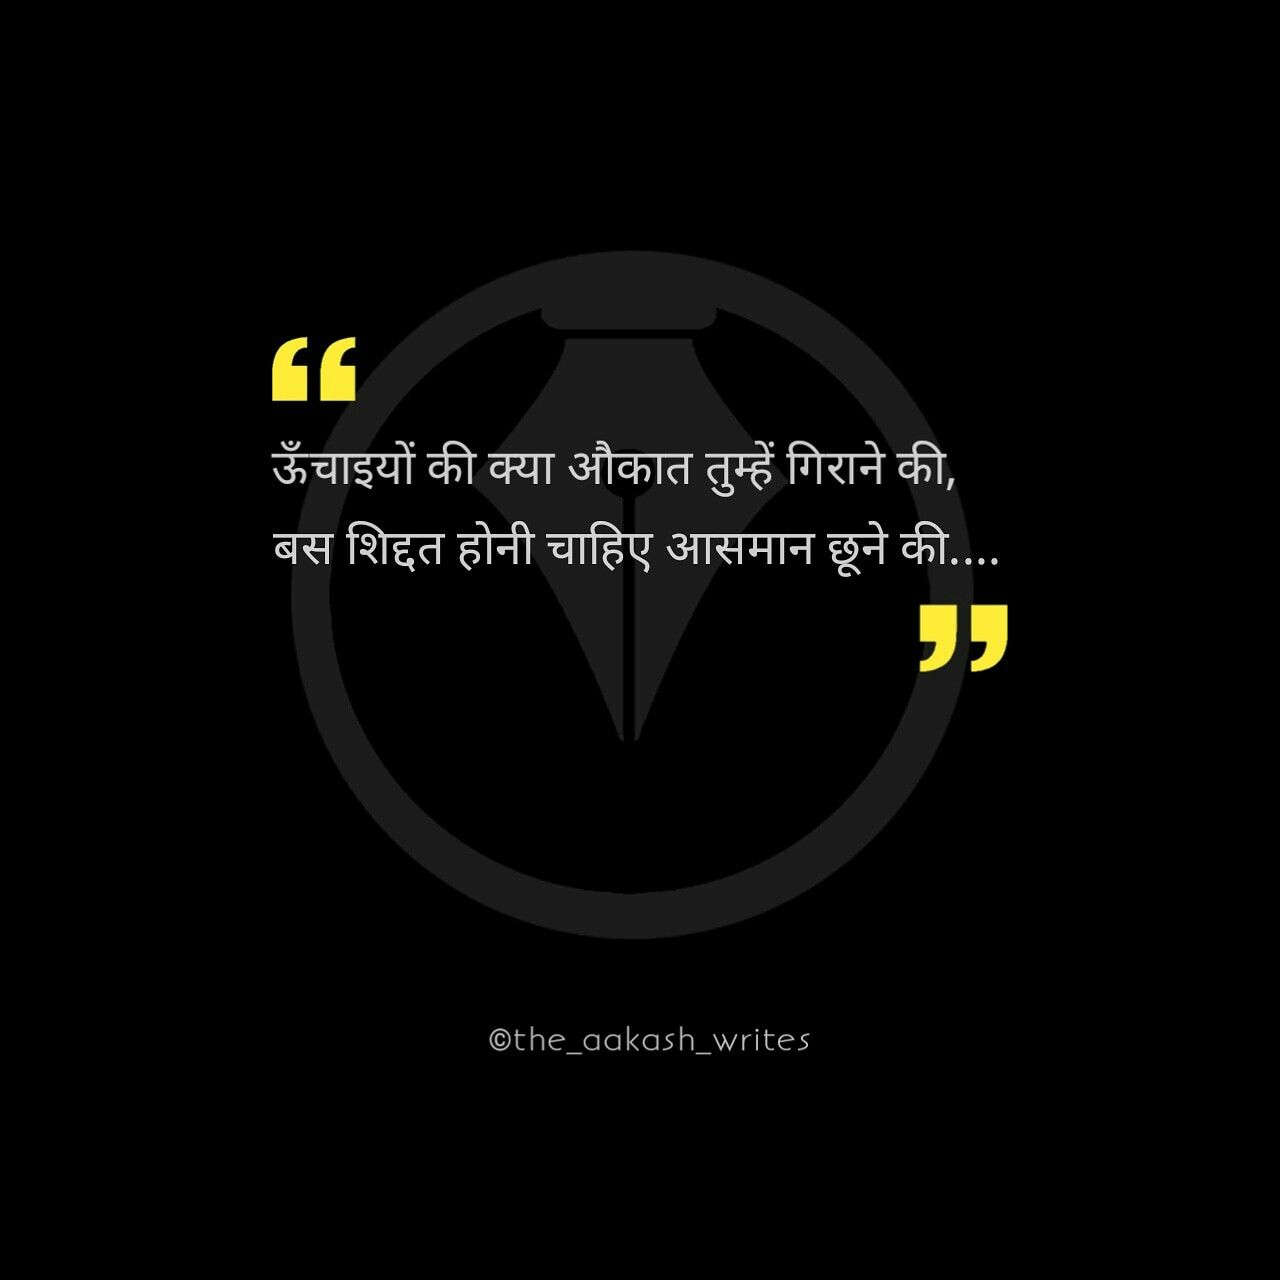 Pin by Anju Chawla on Hindi Poetry  Affirmation quotes